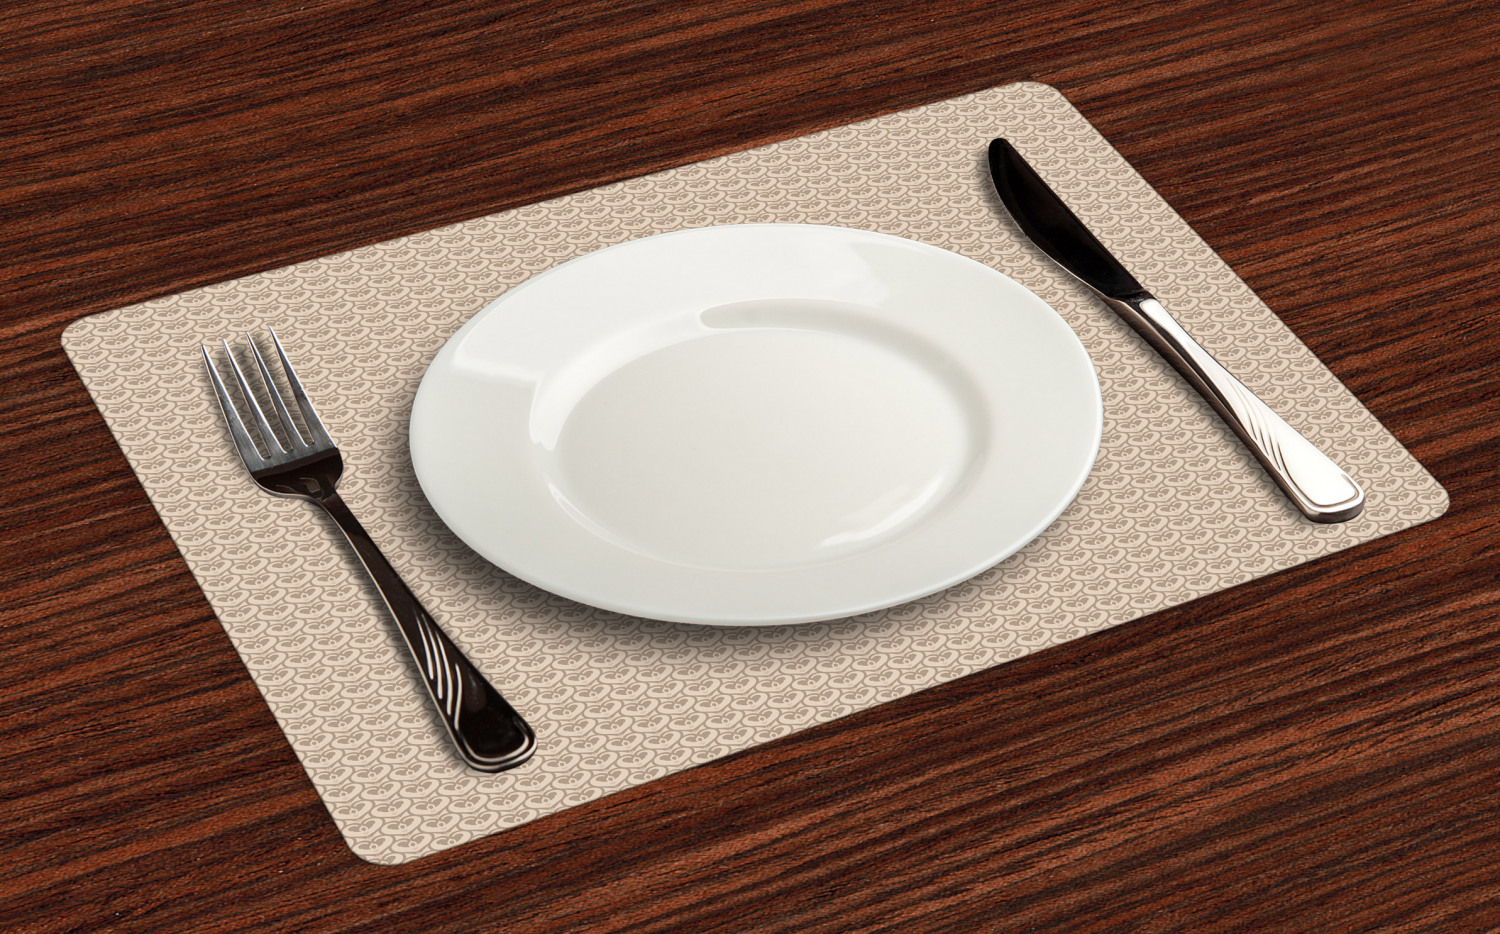 Ambesonne-Fabric-Place-Mats-Set-of-4-Placemats-for-Dining-Room-and-Kitchen-Table thumbnail 37